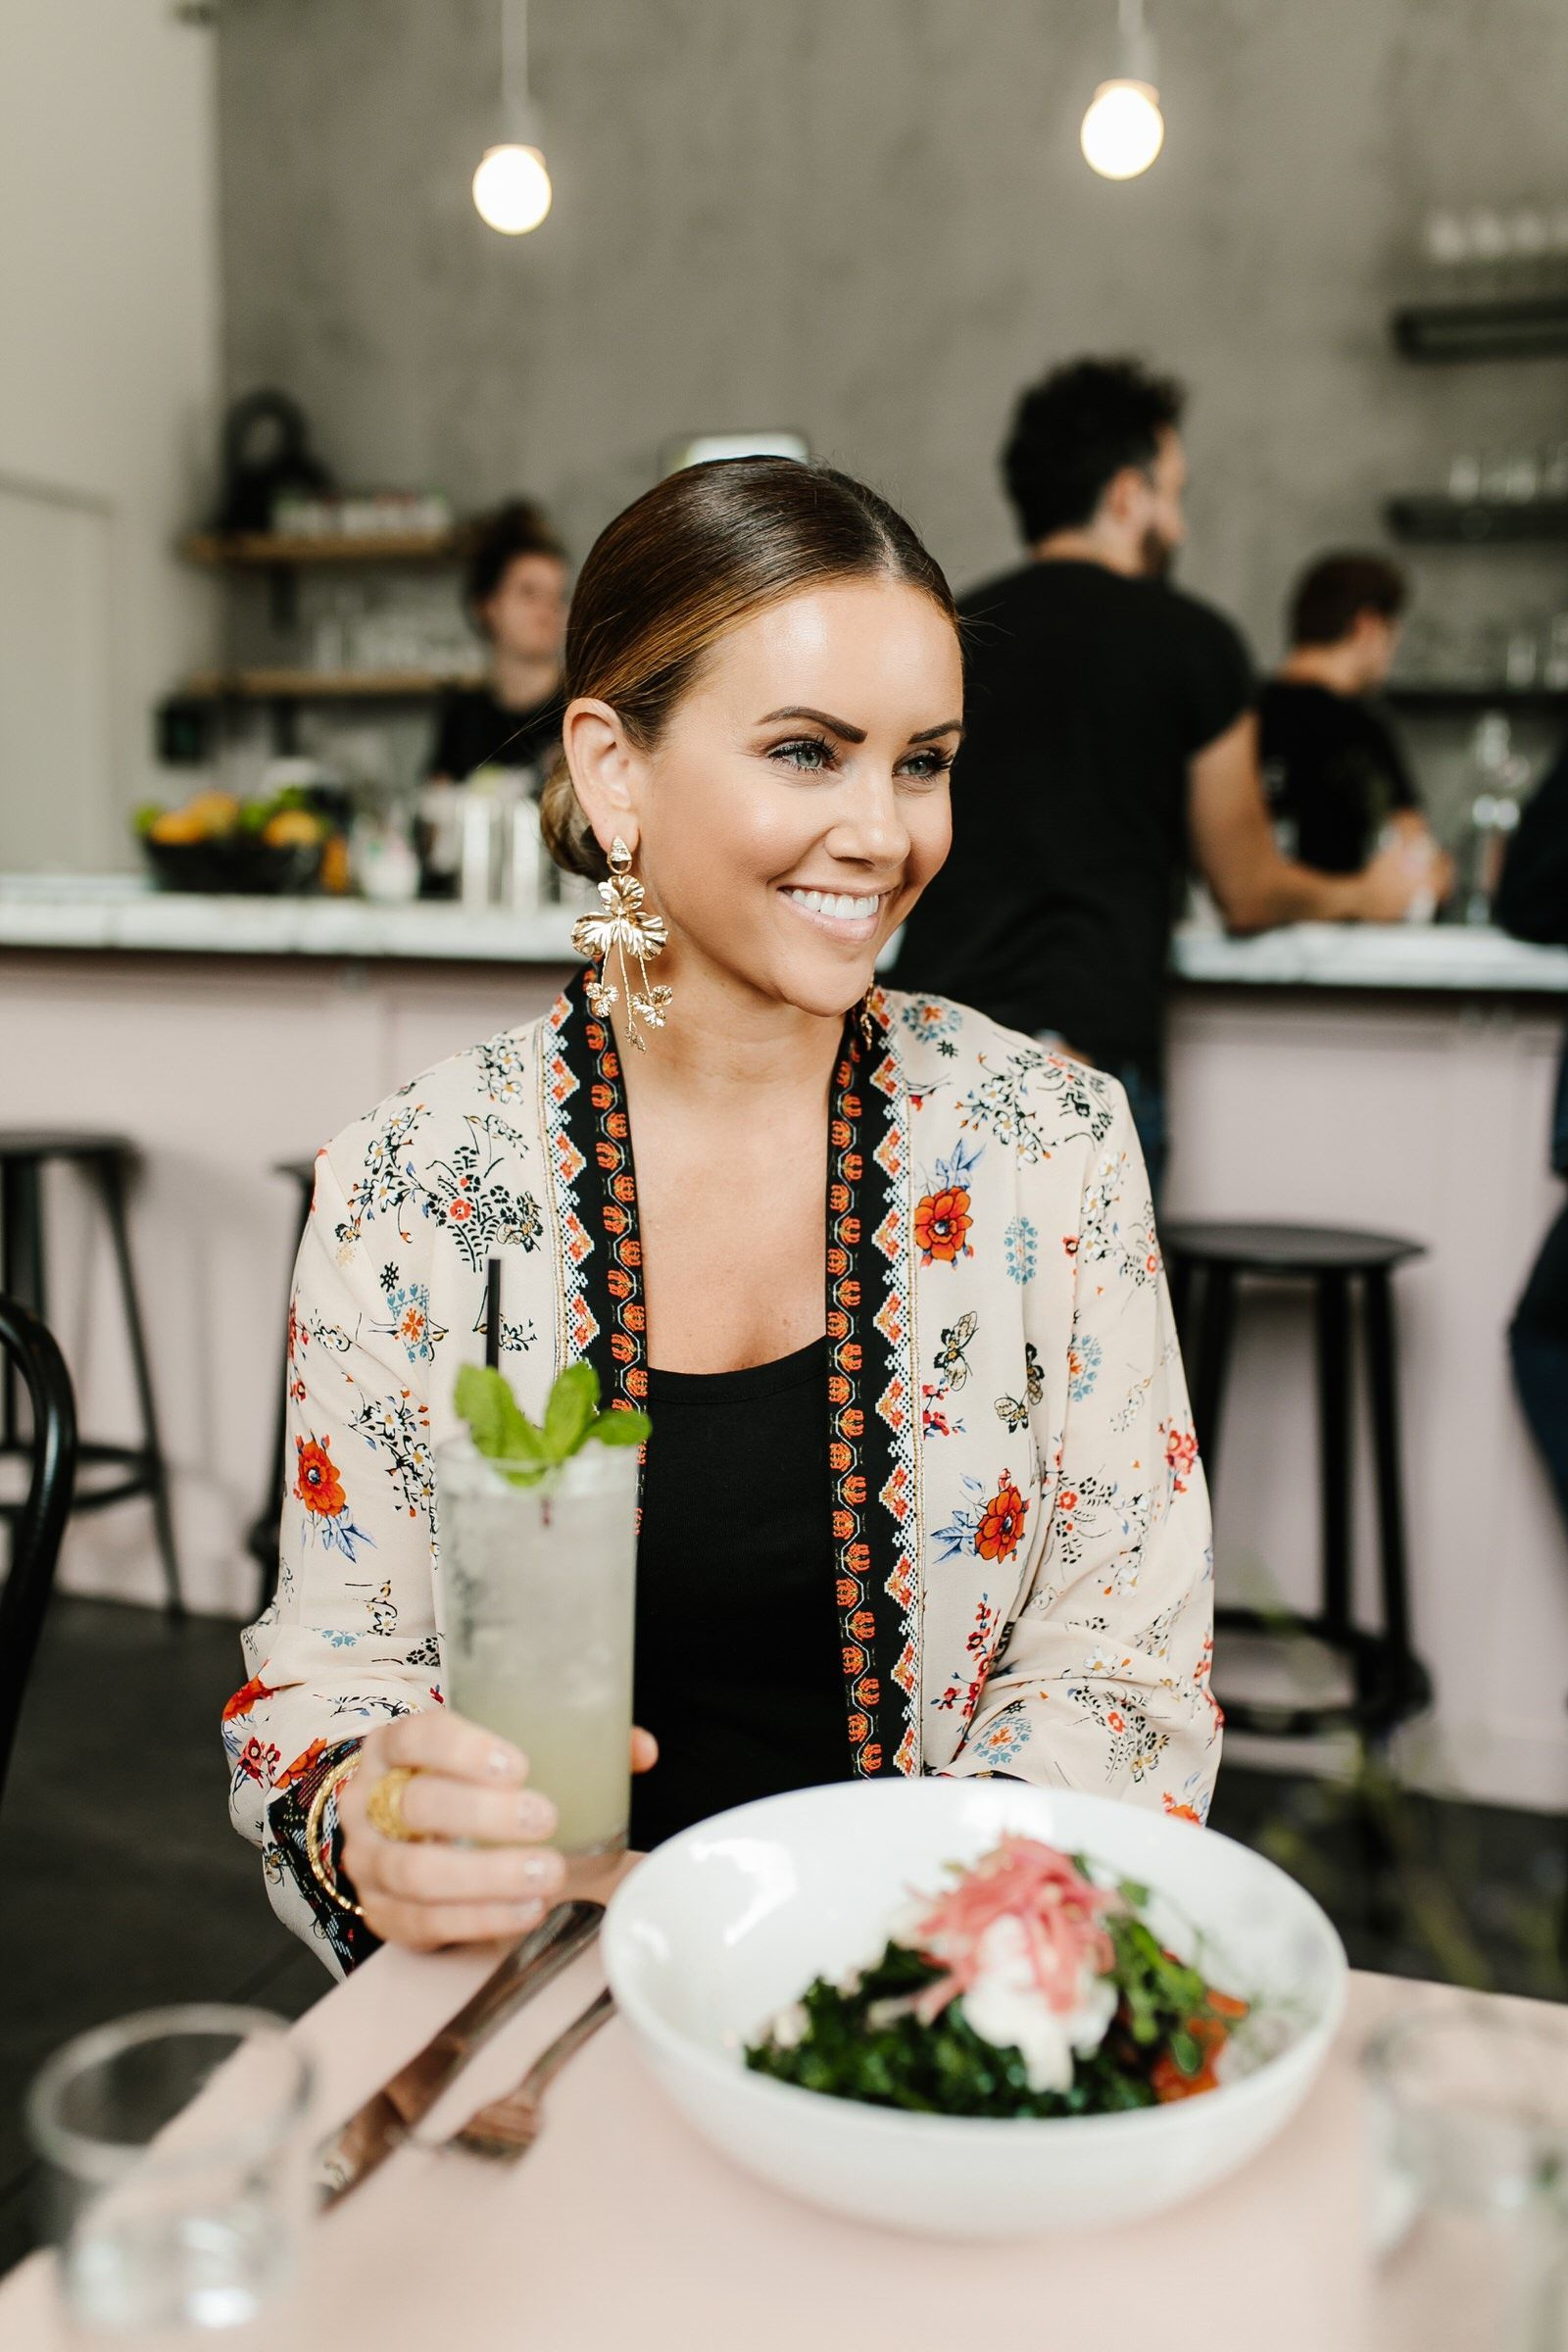 Cafe Roze Nashville- where to east in Nashville Tennessee | KBStyled Trendy Outfits